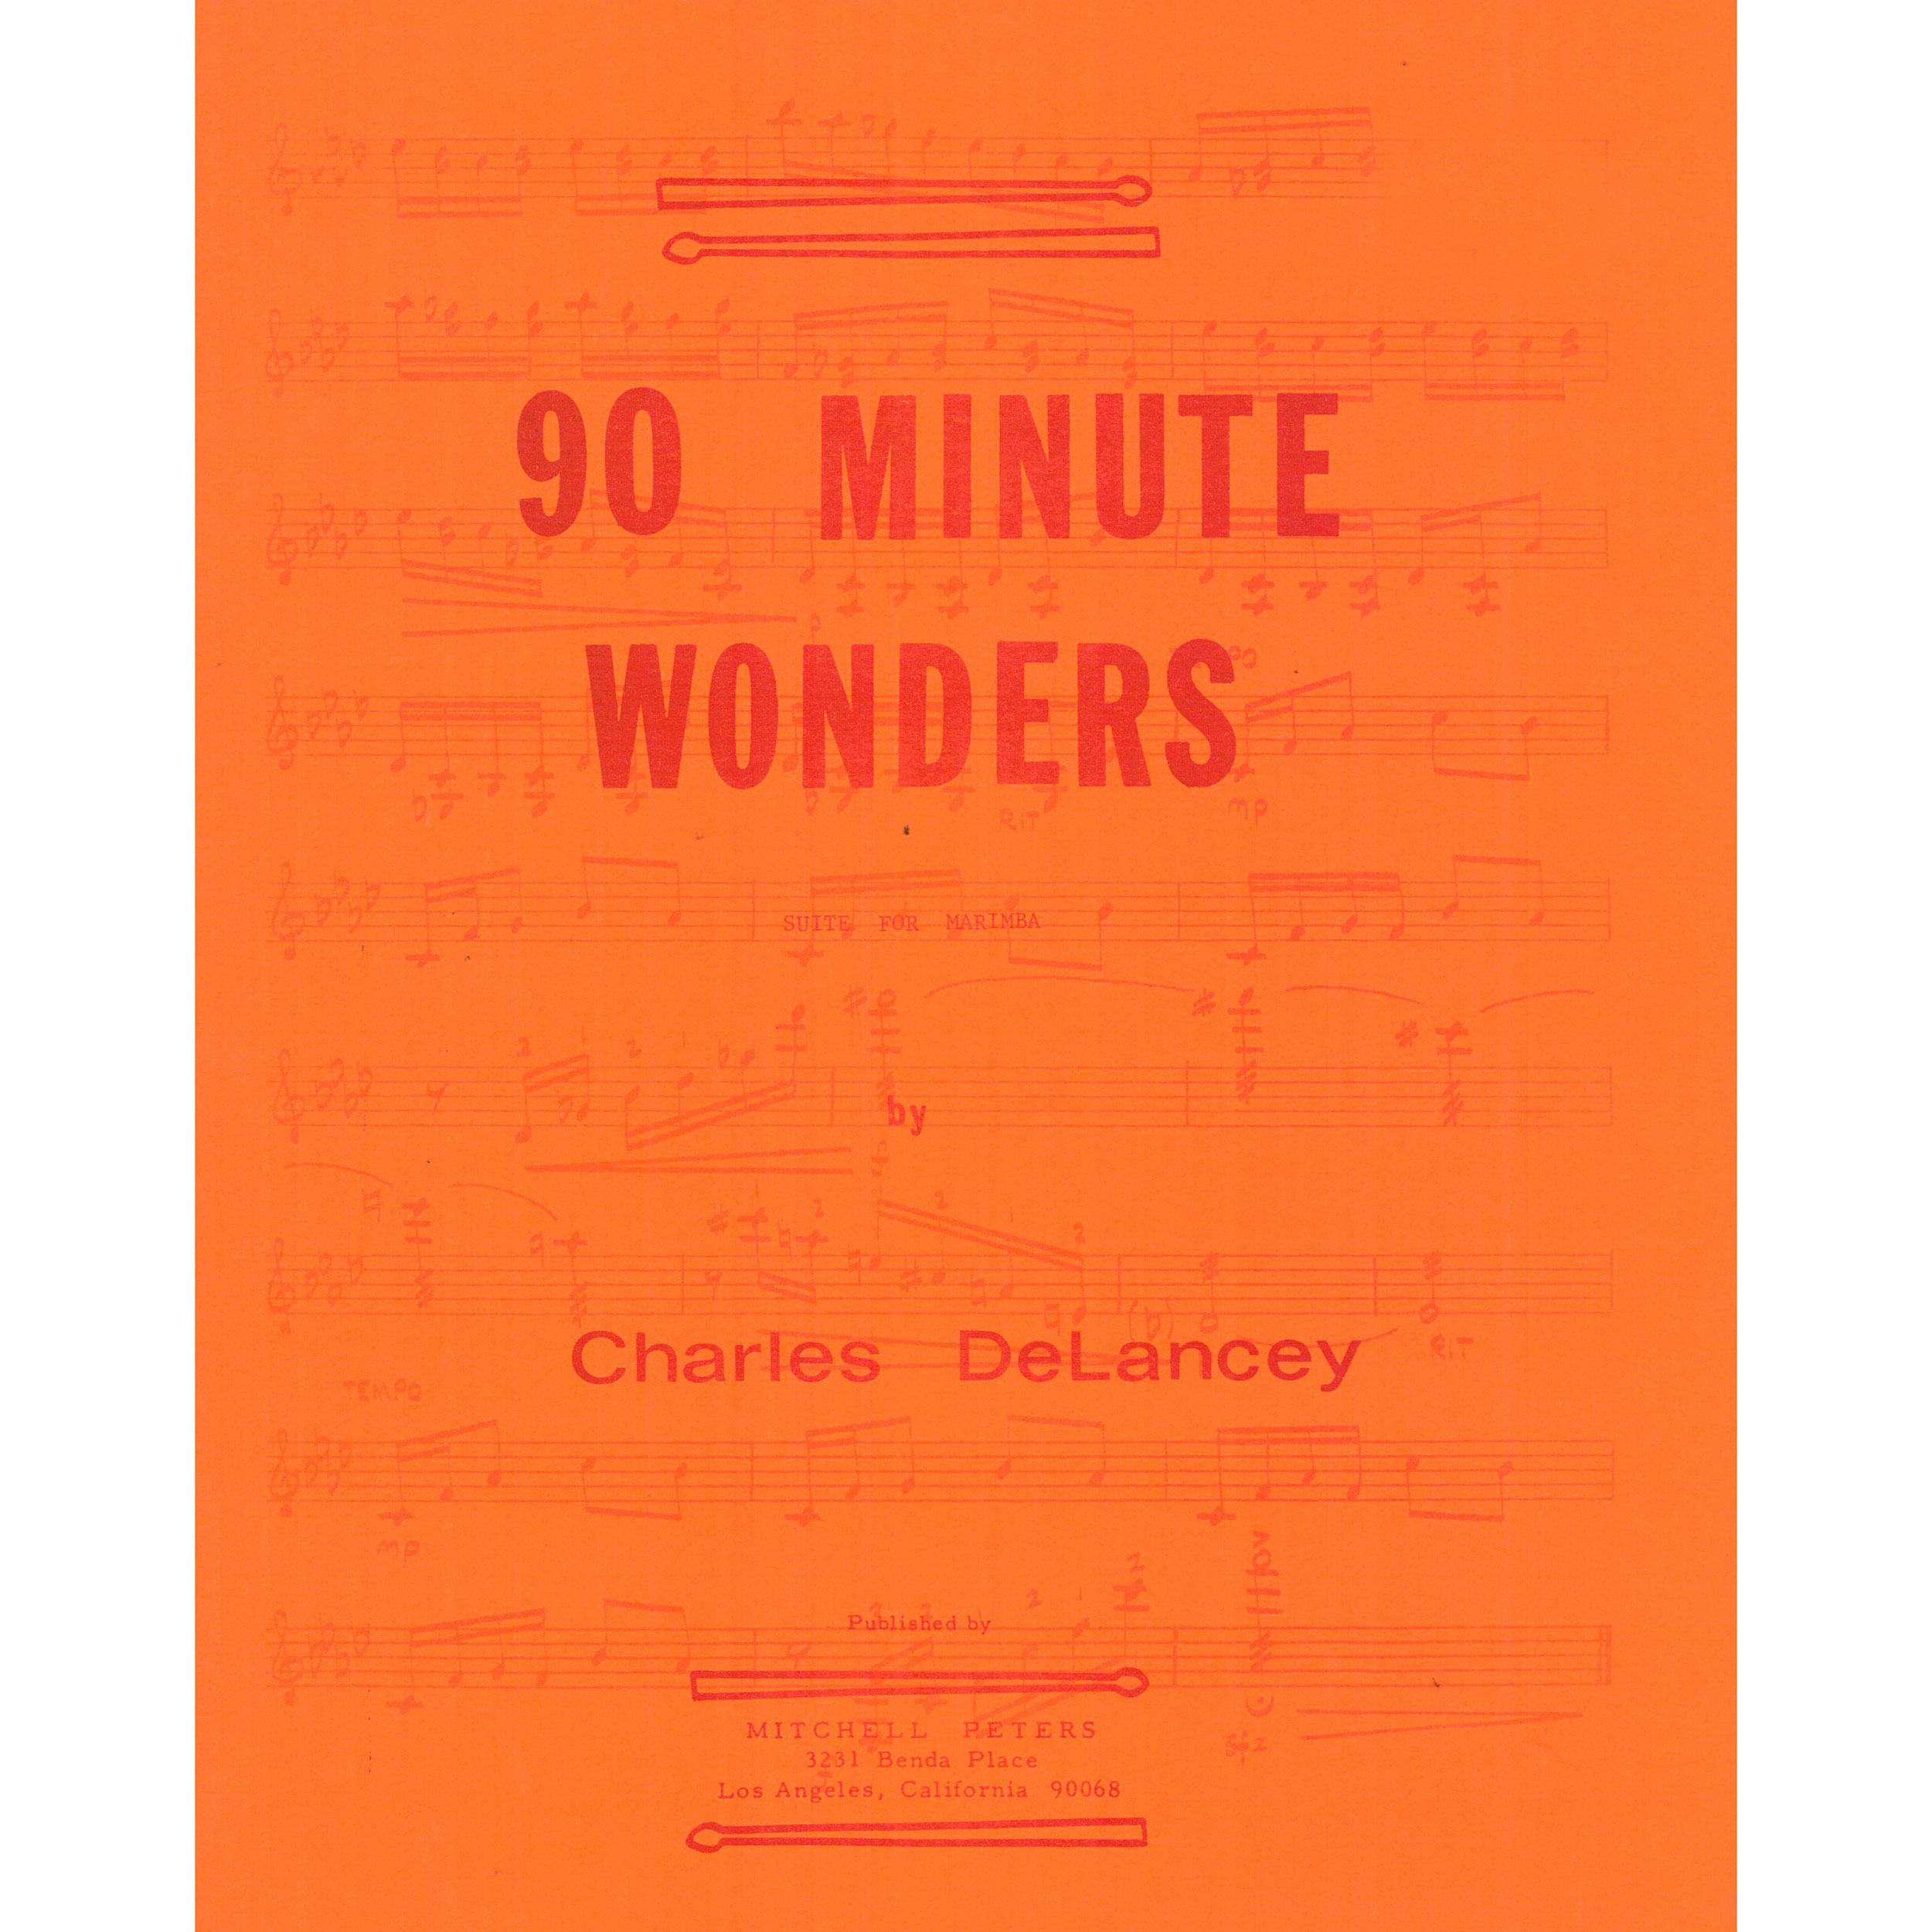 90 Minute Wonders by Charles DeLancey